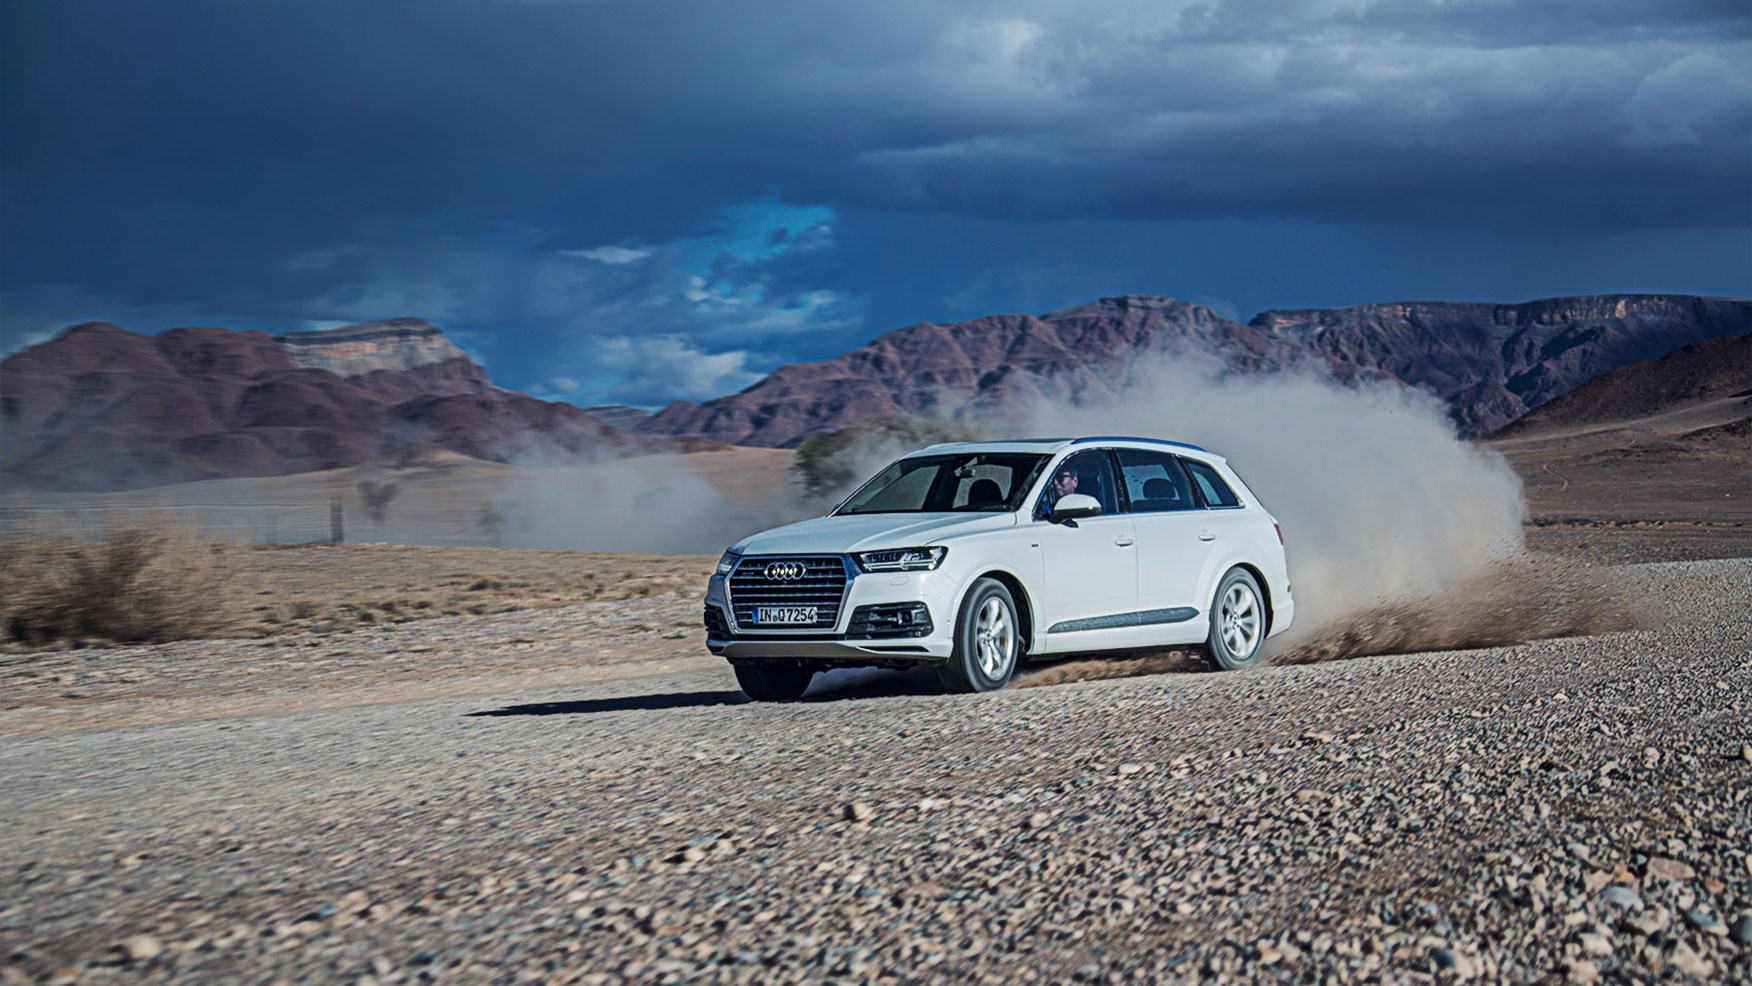 Audi Q7 3 0 TDI 2015 prototype review in Namibia by CAR